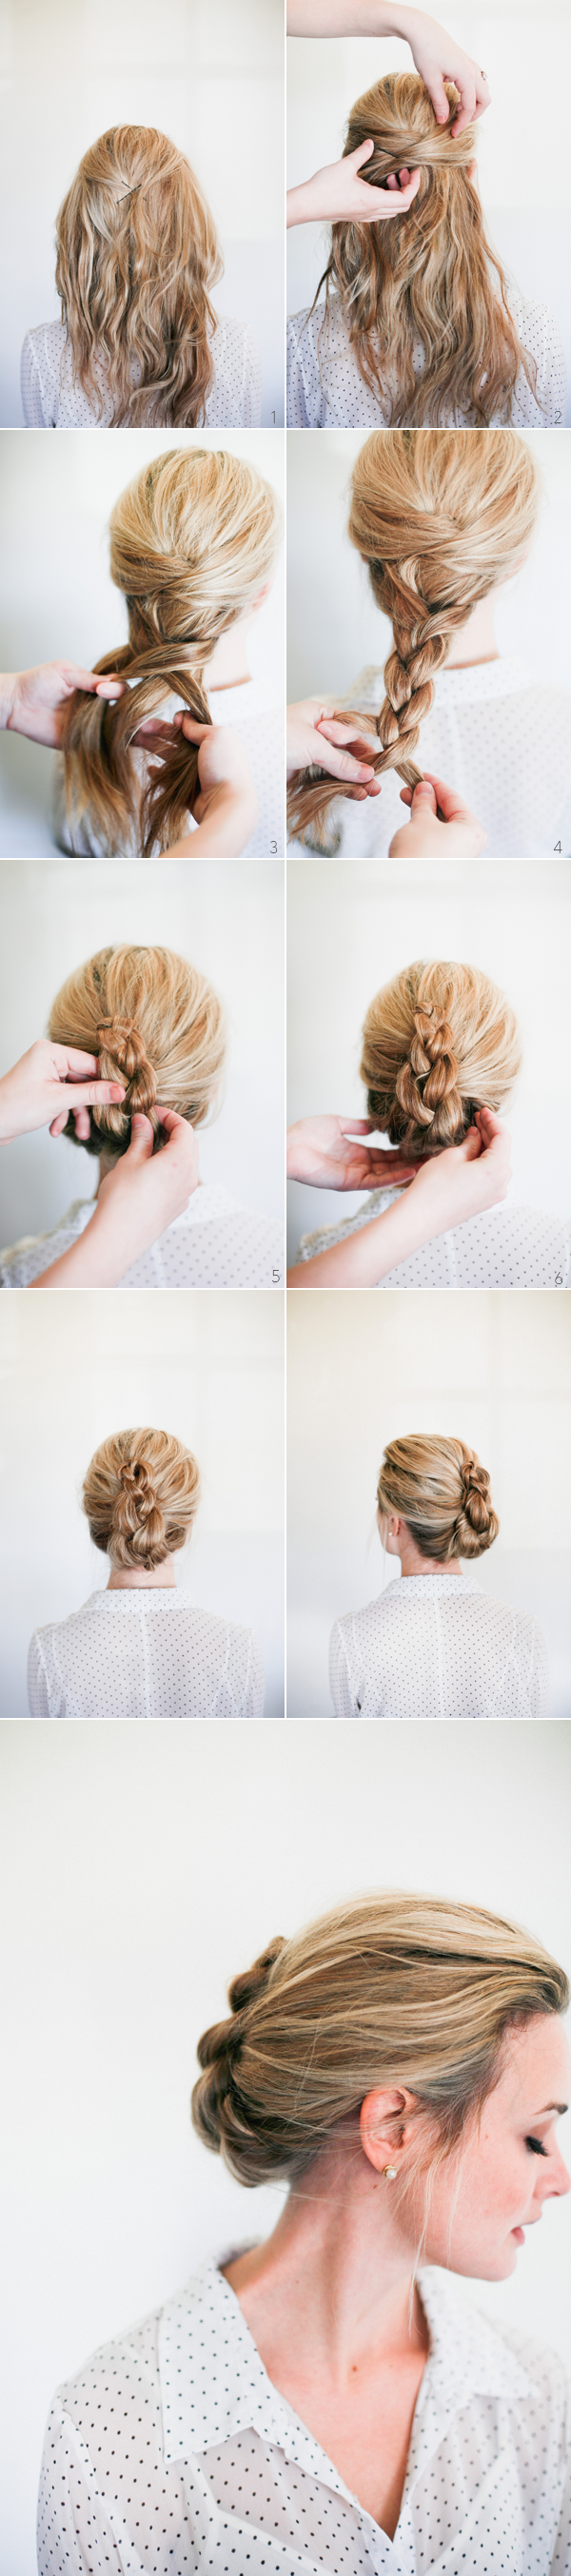 Braided French Twist How To - Once Wed